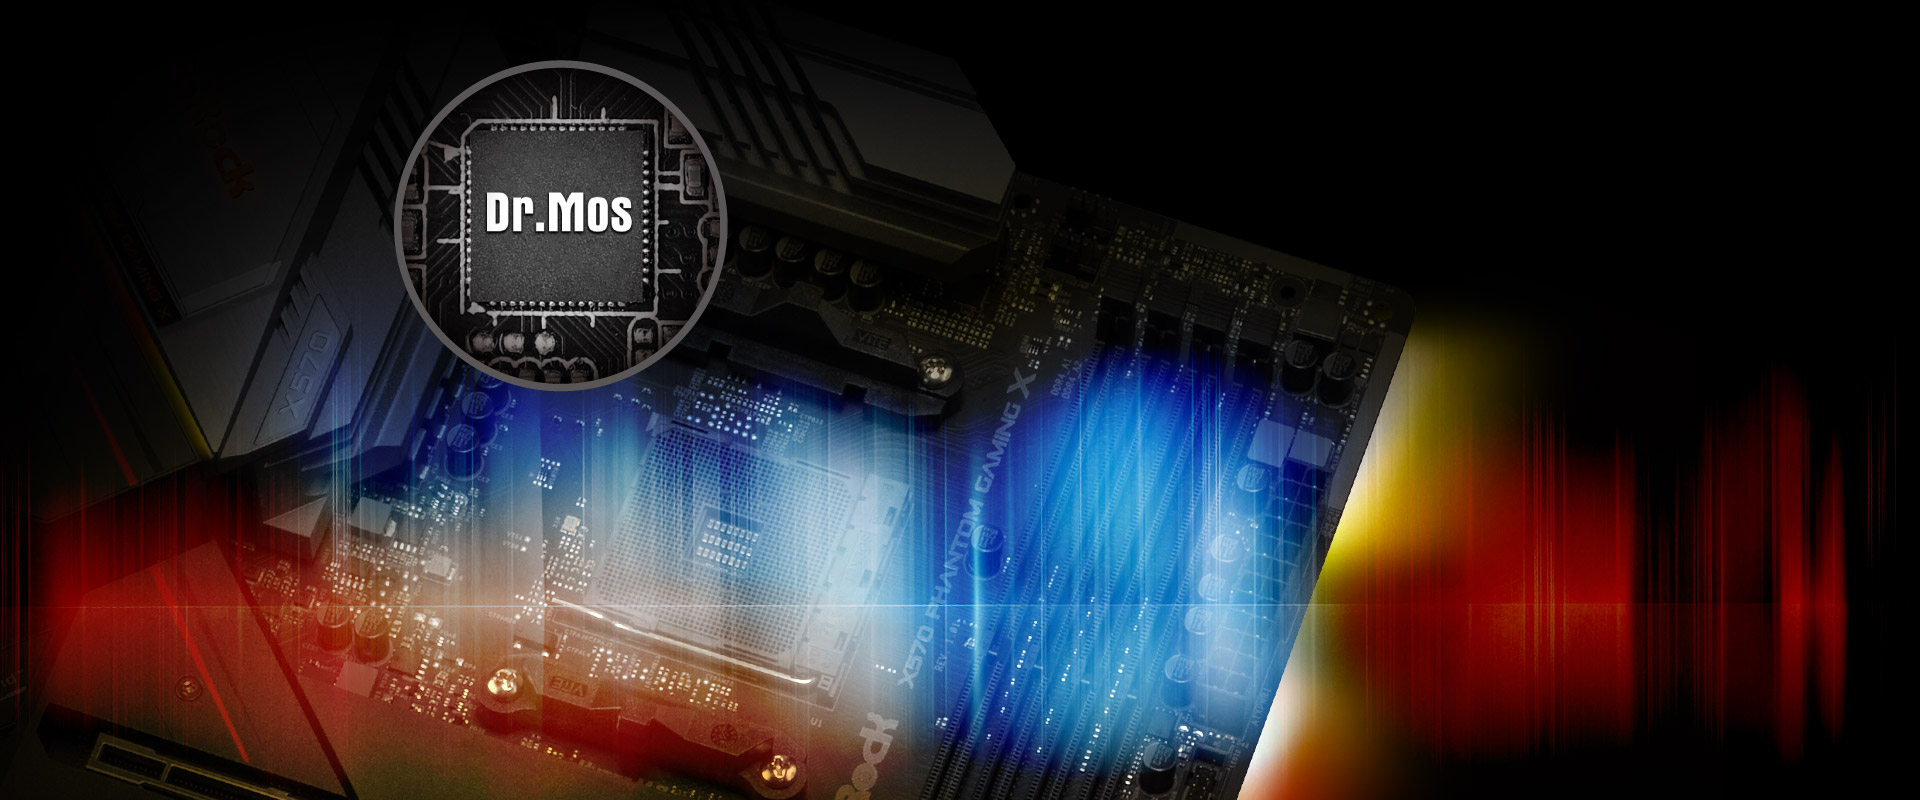 DR MOS Chipset above a color-spectrum filtered ASRock X570 Taichi Motherboard